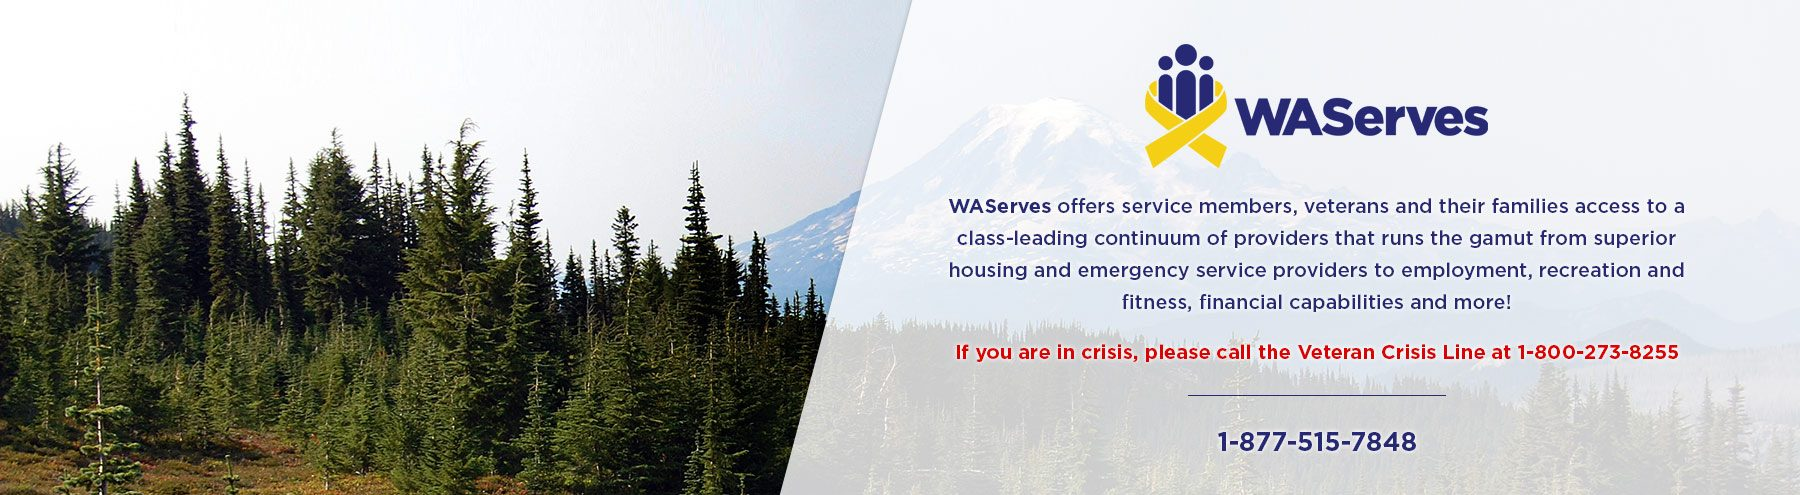 If you are in crisis, please call the Veteran Crisis Line at 1-800-272-8255.  WAServes - Greater Puget Sound offers service members, veterans and their families access to a class-leading continuum of providers that runs the gamut from superior housing and emergency service providers to employment, recreation and fitness, financial capabilities and more!